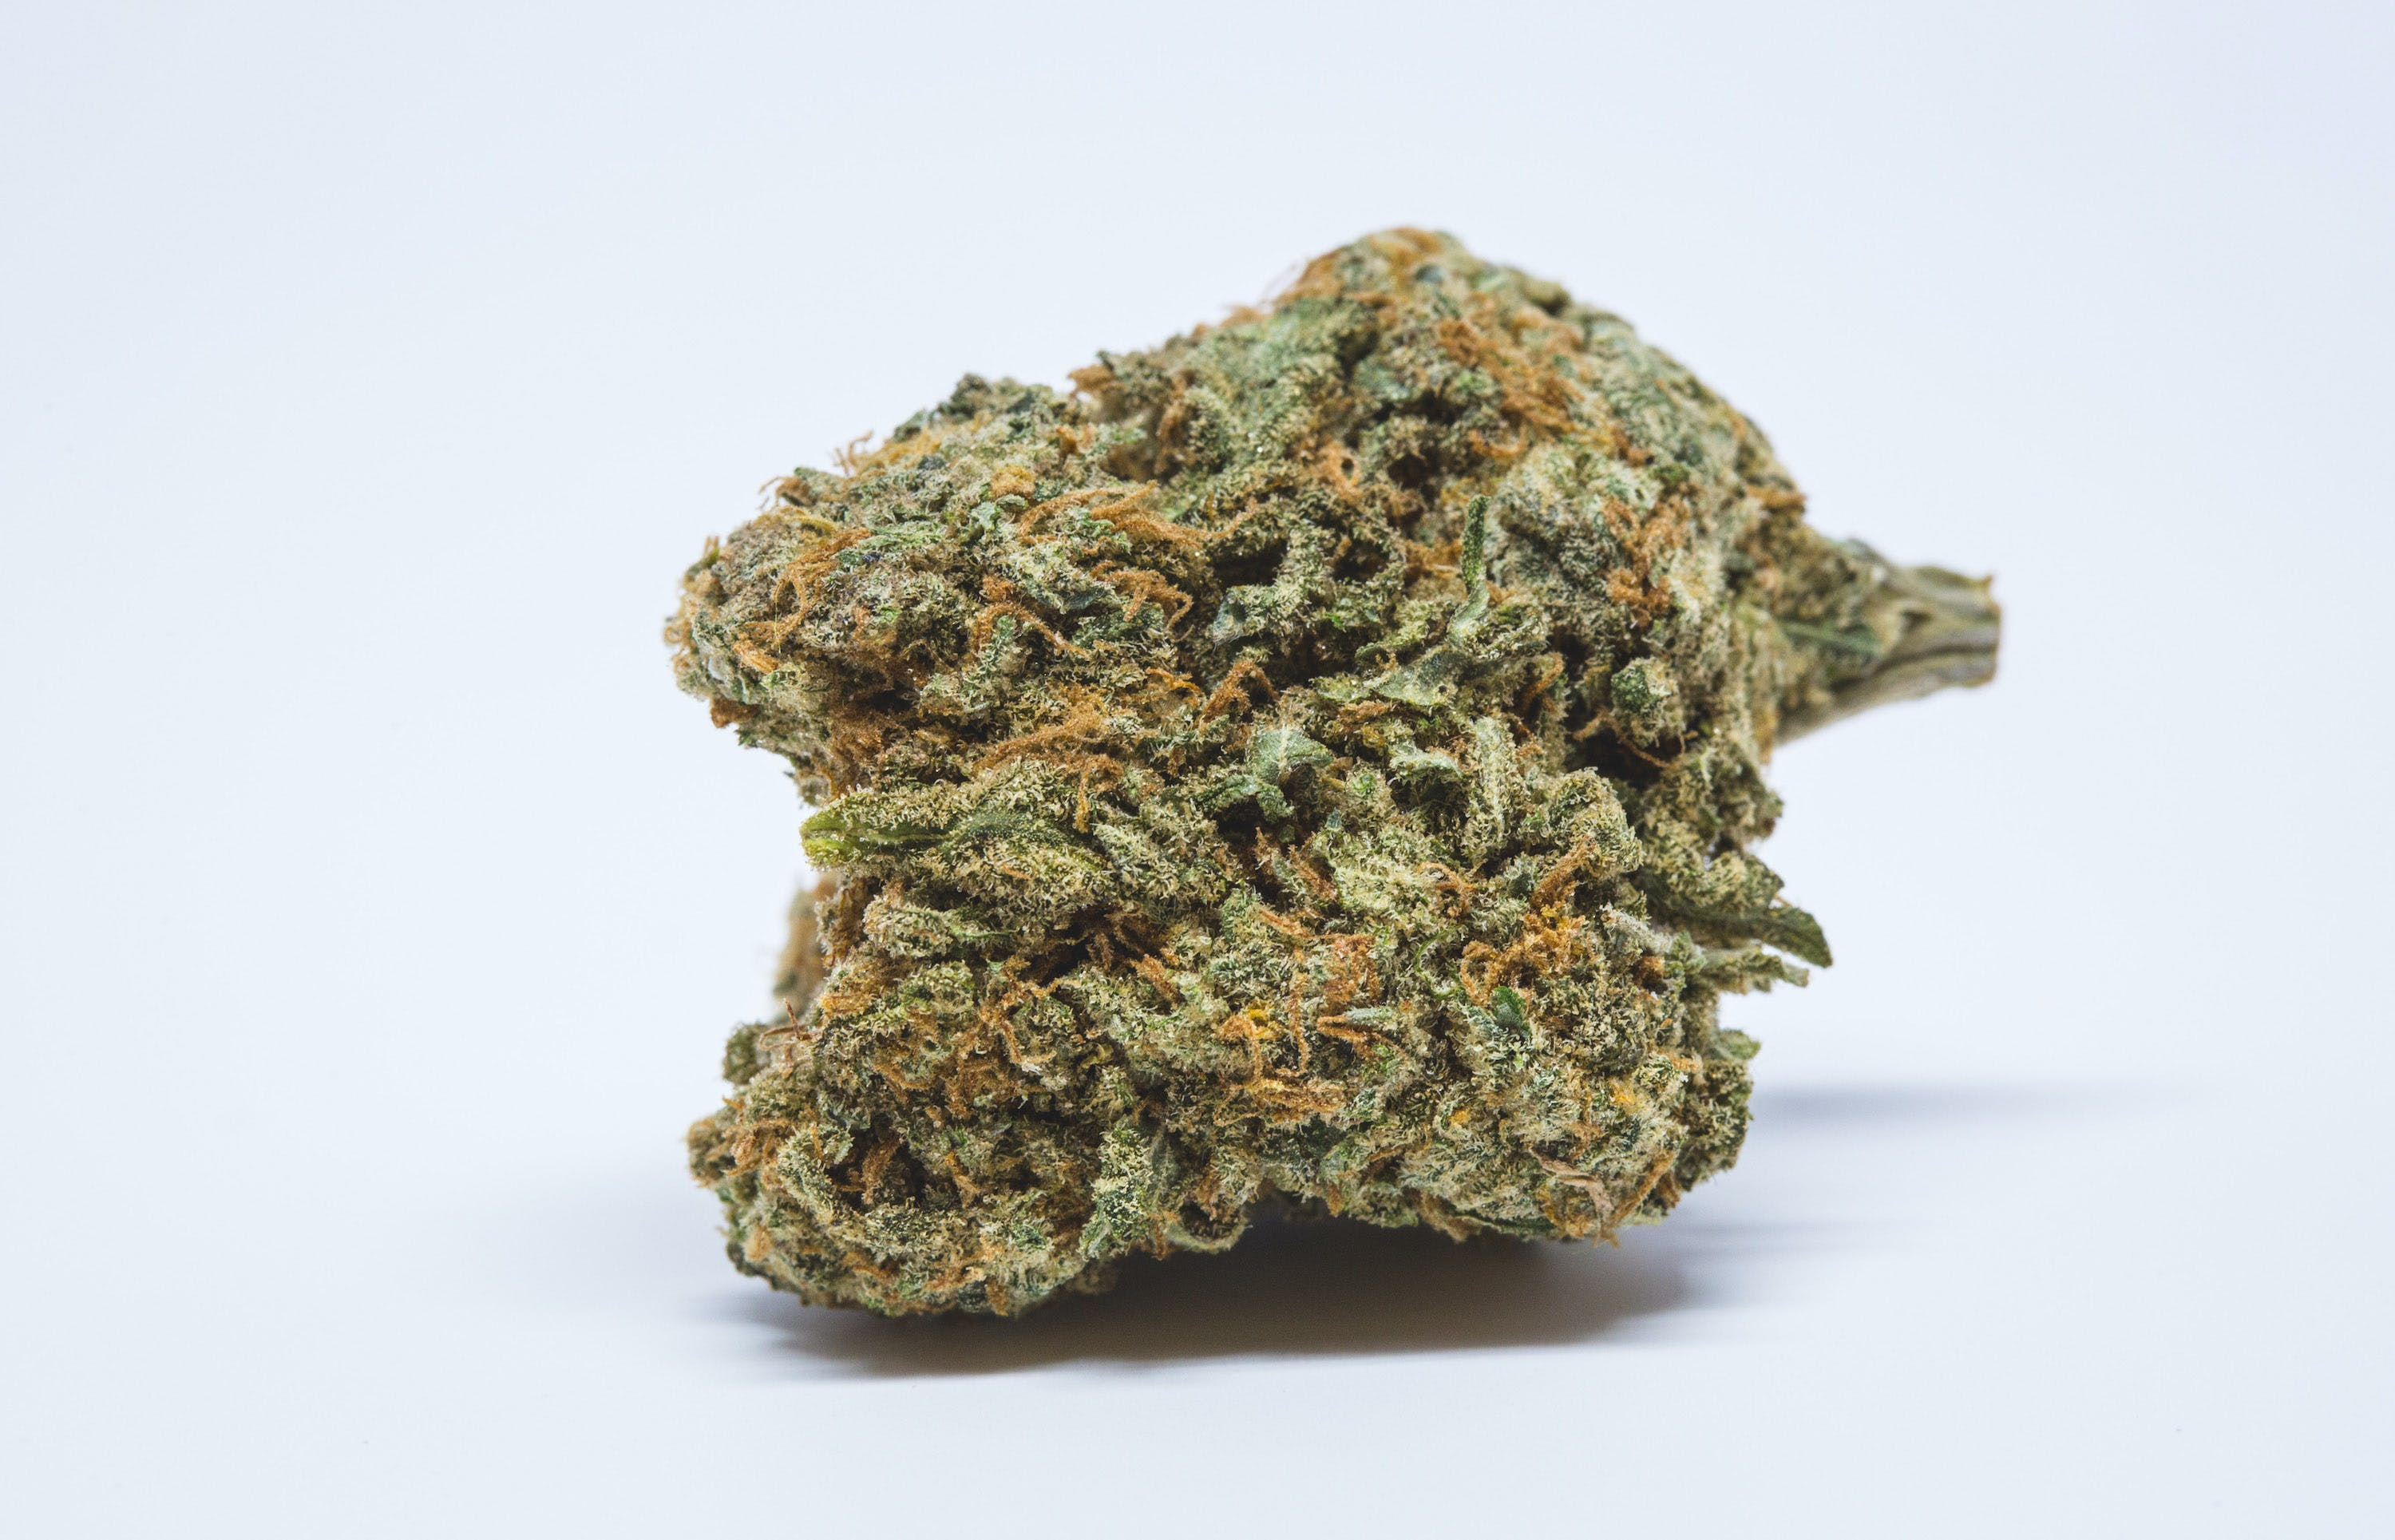 Allevi8 Blue Cheese 11 copy Congress Blocks Recreational Marijuana Sales In Washington, D.C.